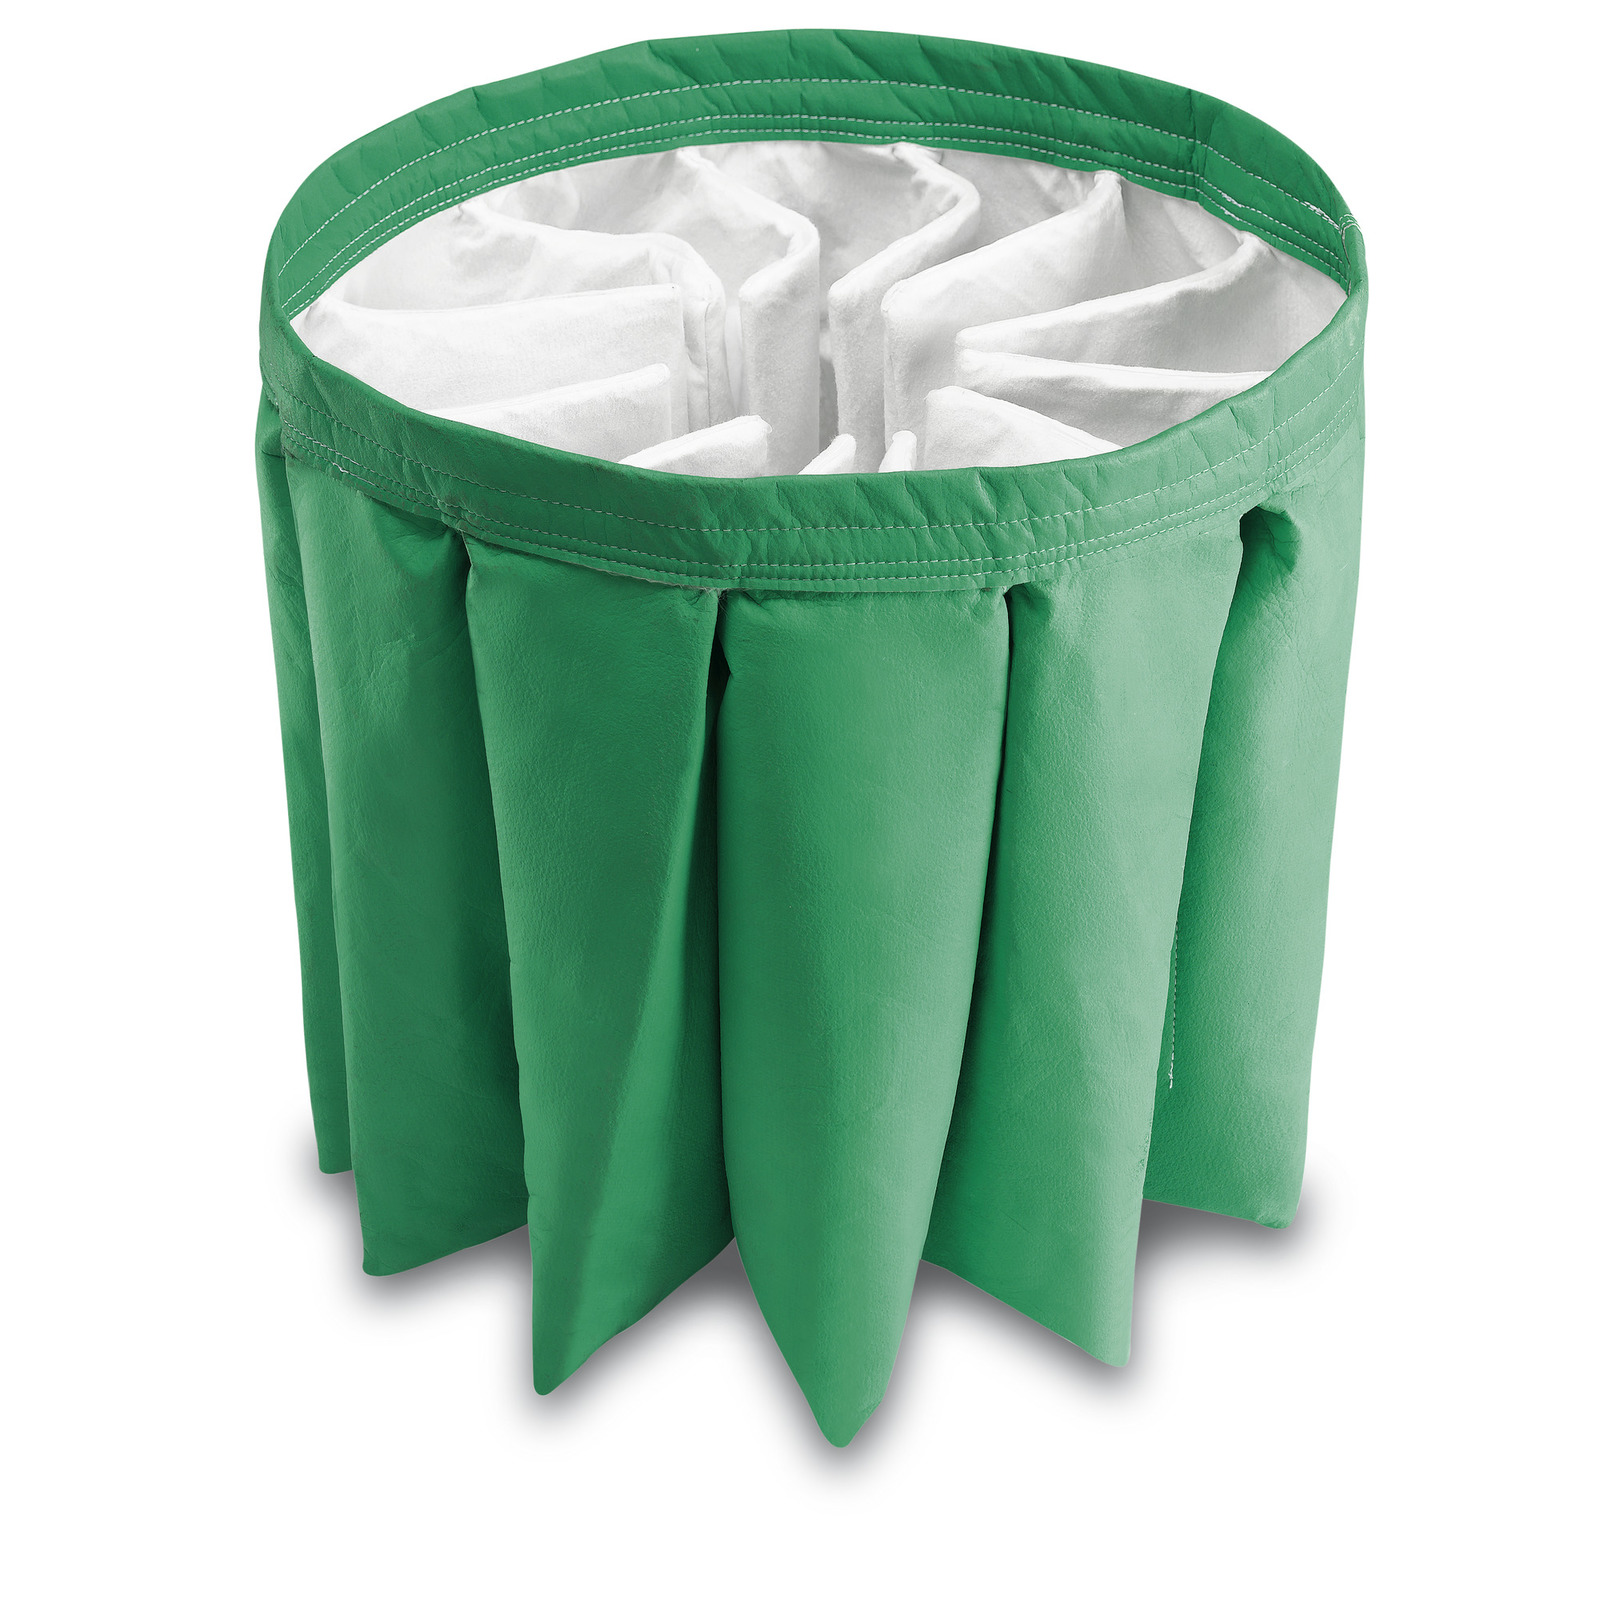 Kärcher  Pocketed filter (M approved) green;